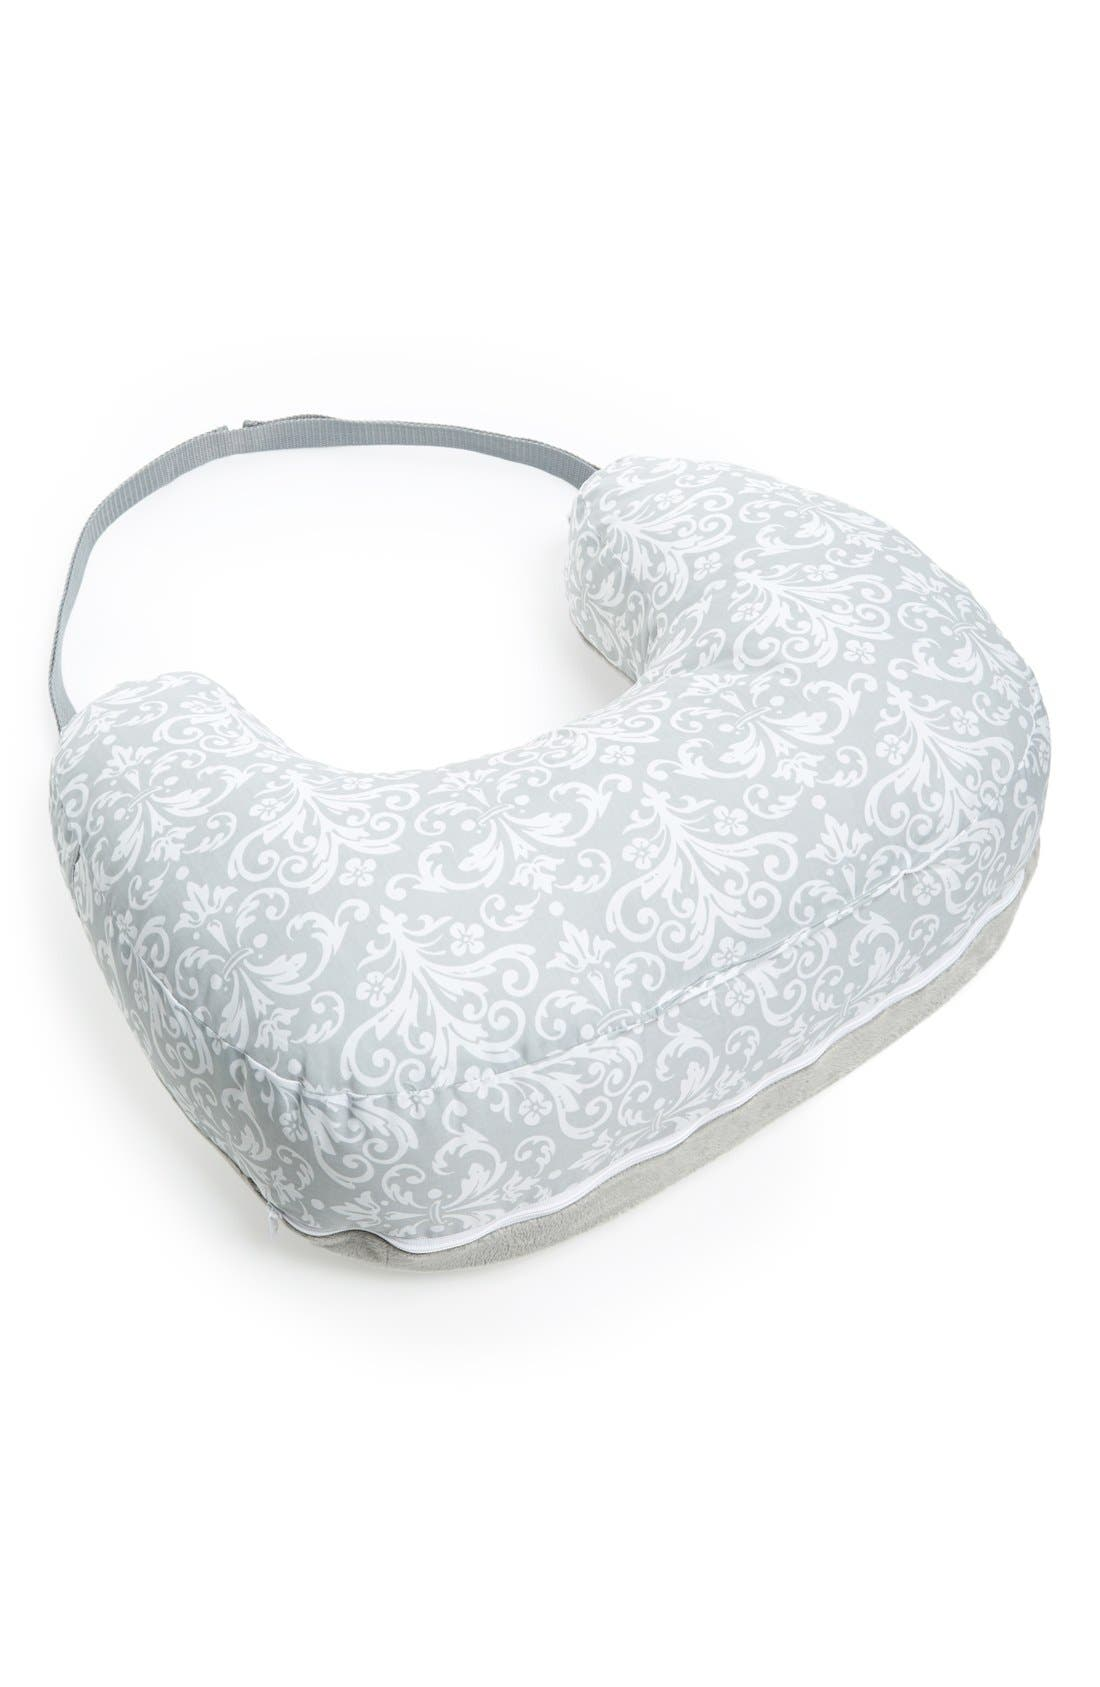 Main Image - Boppy Two Sided Breastfeeding Pillow & Slipcover